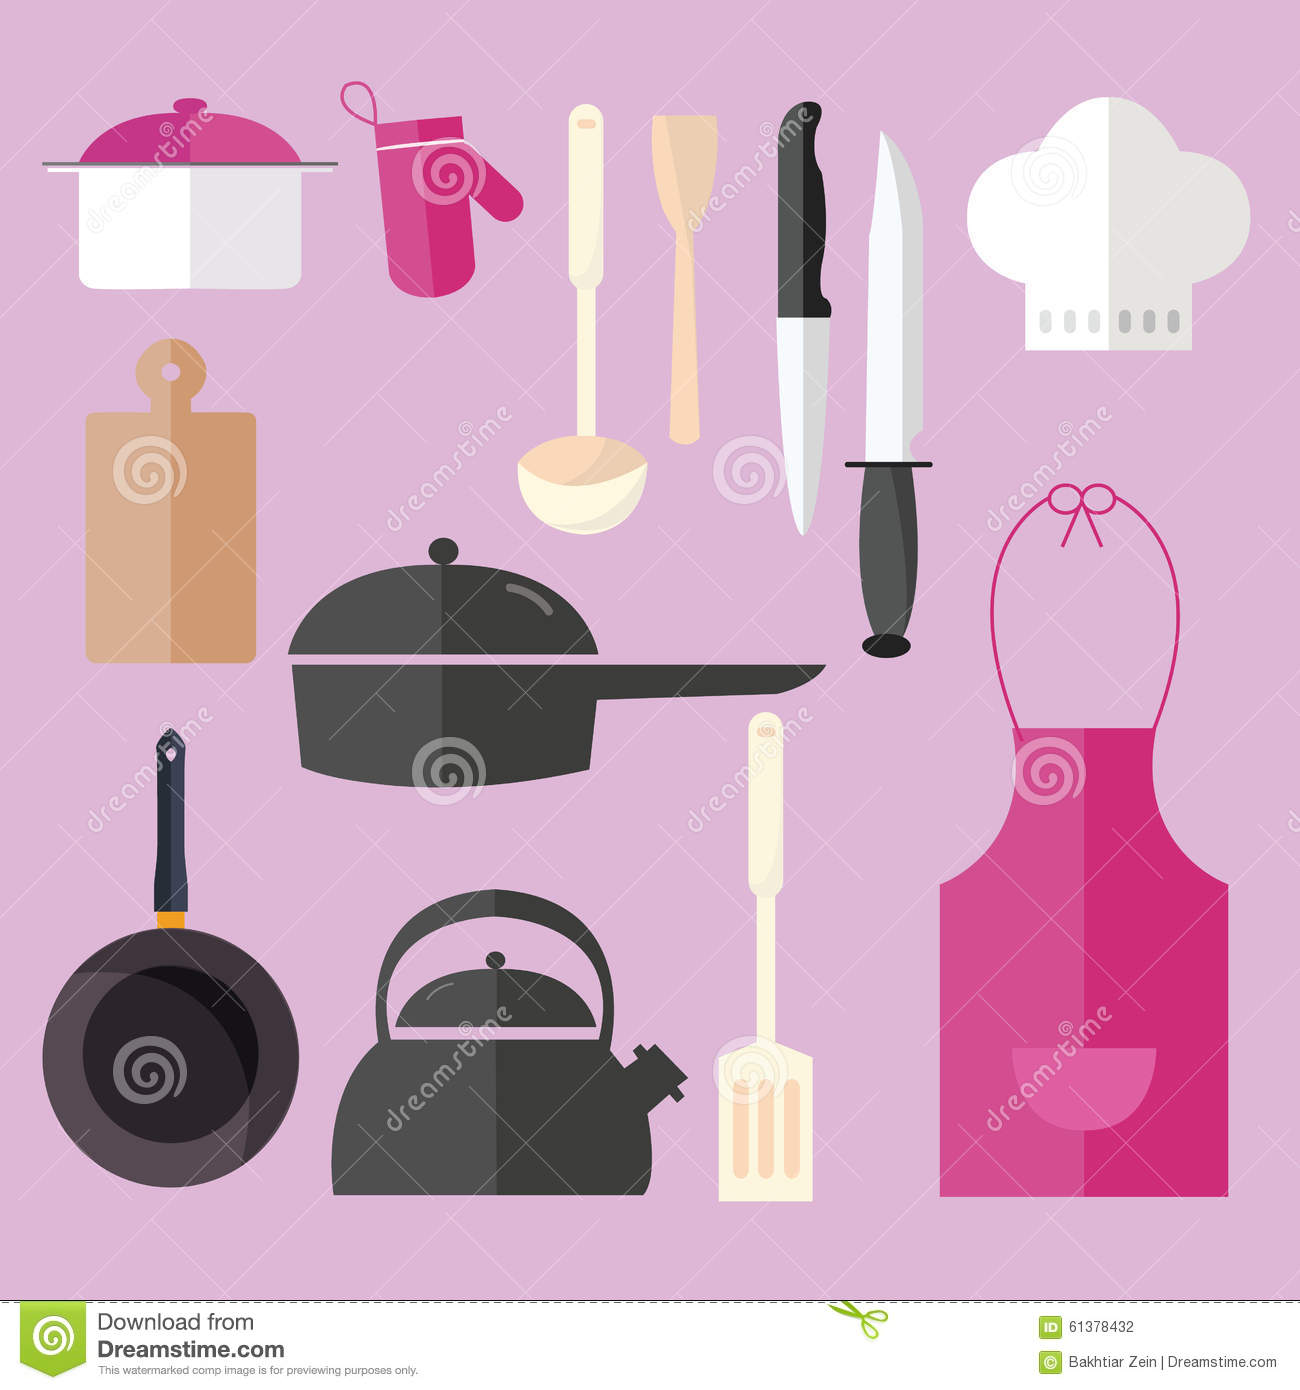 Pinke Küchenutensilien Cooking Icon Set Object In Pink Kitchen Chef Hat Apron Pan